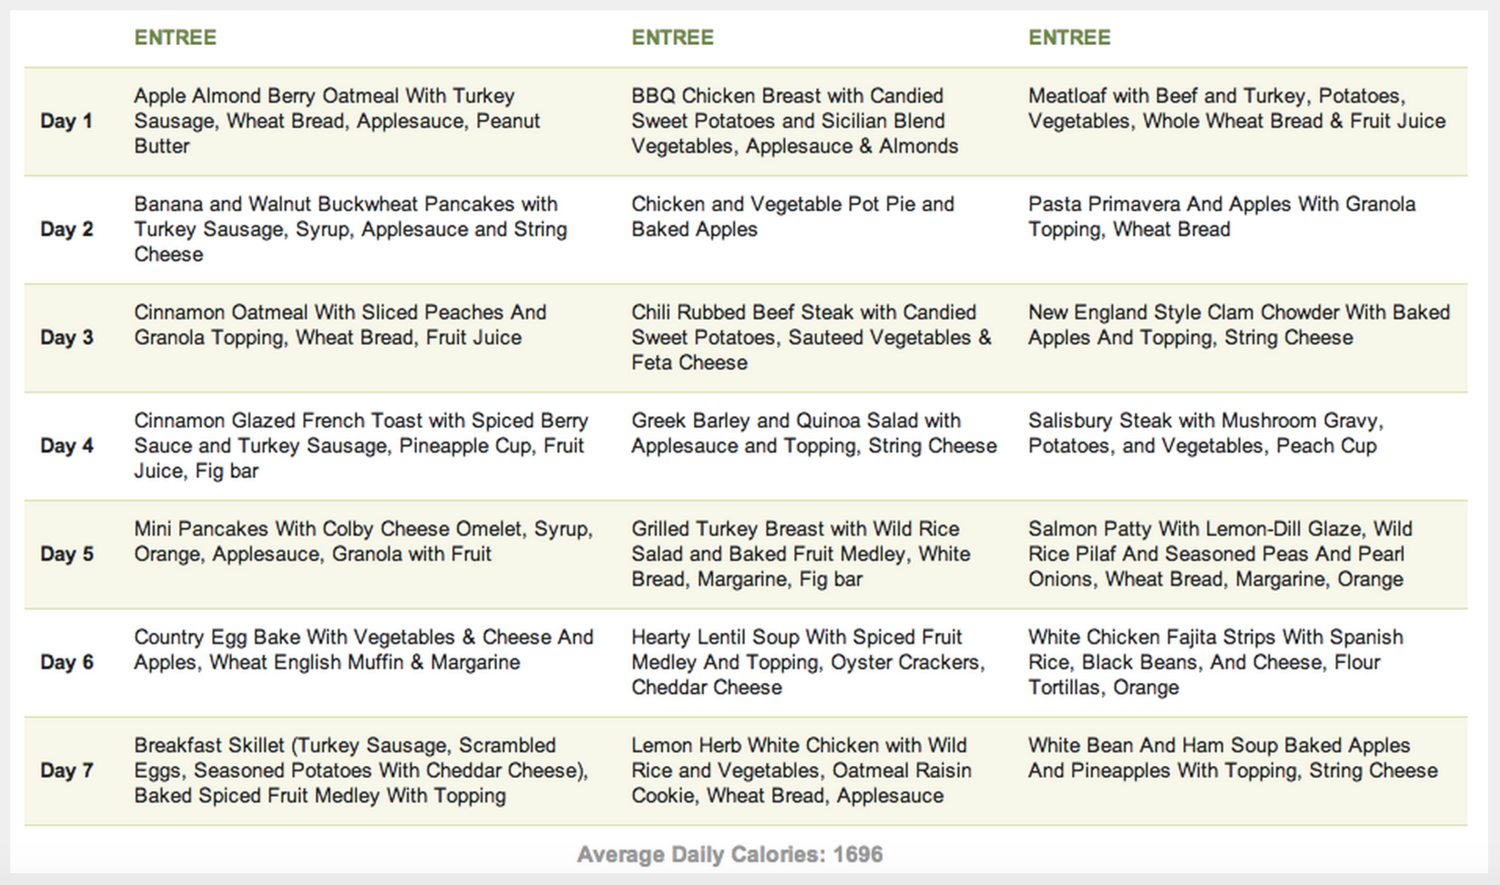 Here's an example of the many options and wide variety of meals